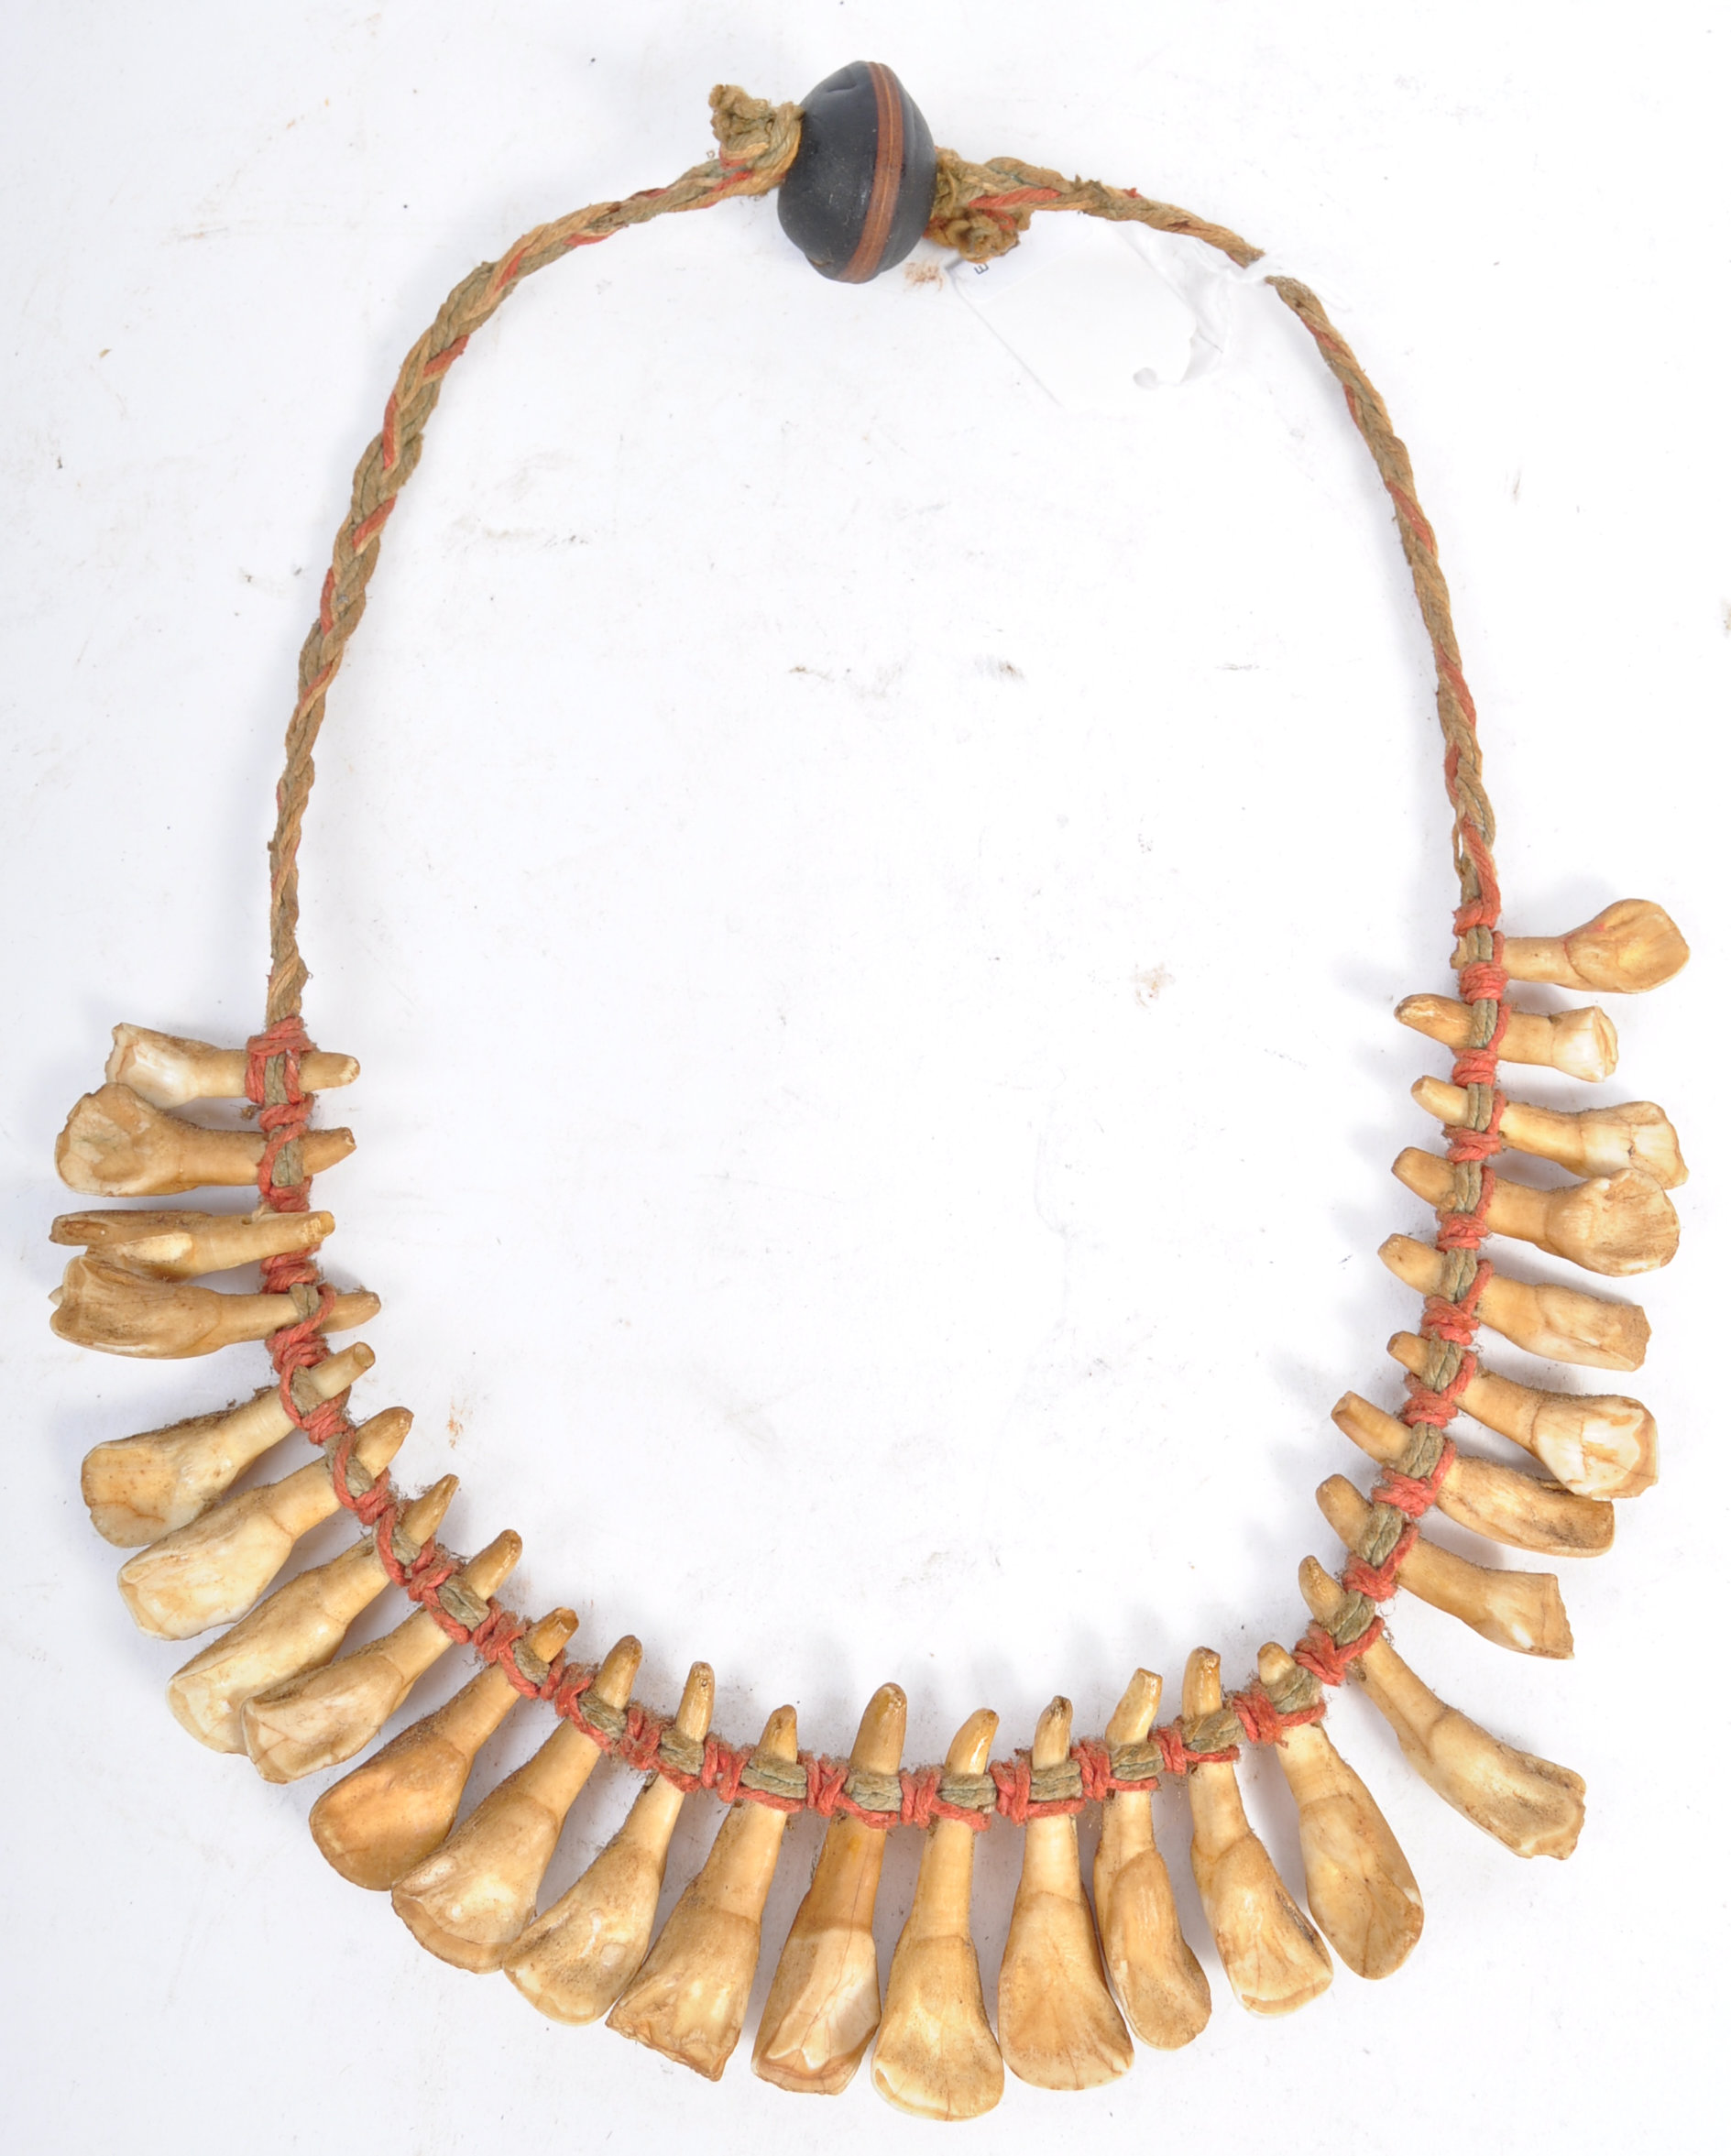 TRIBAL ANTIQUITIES - 19TH CENTURY AFRICAN TOOTH NECKLACE